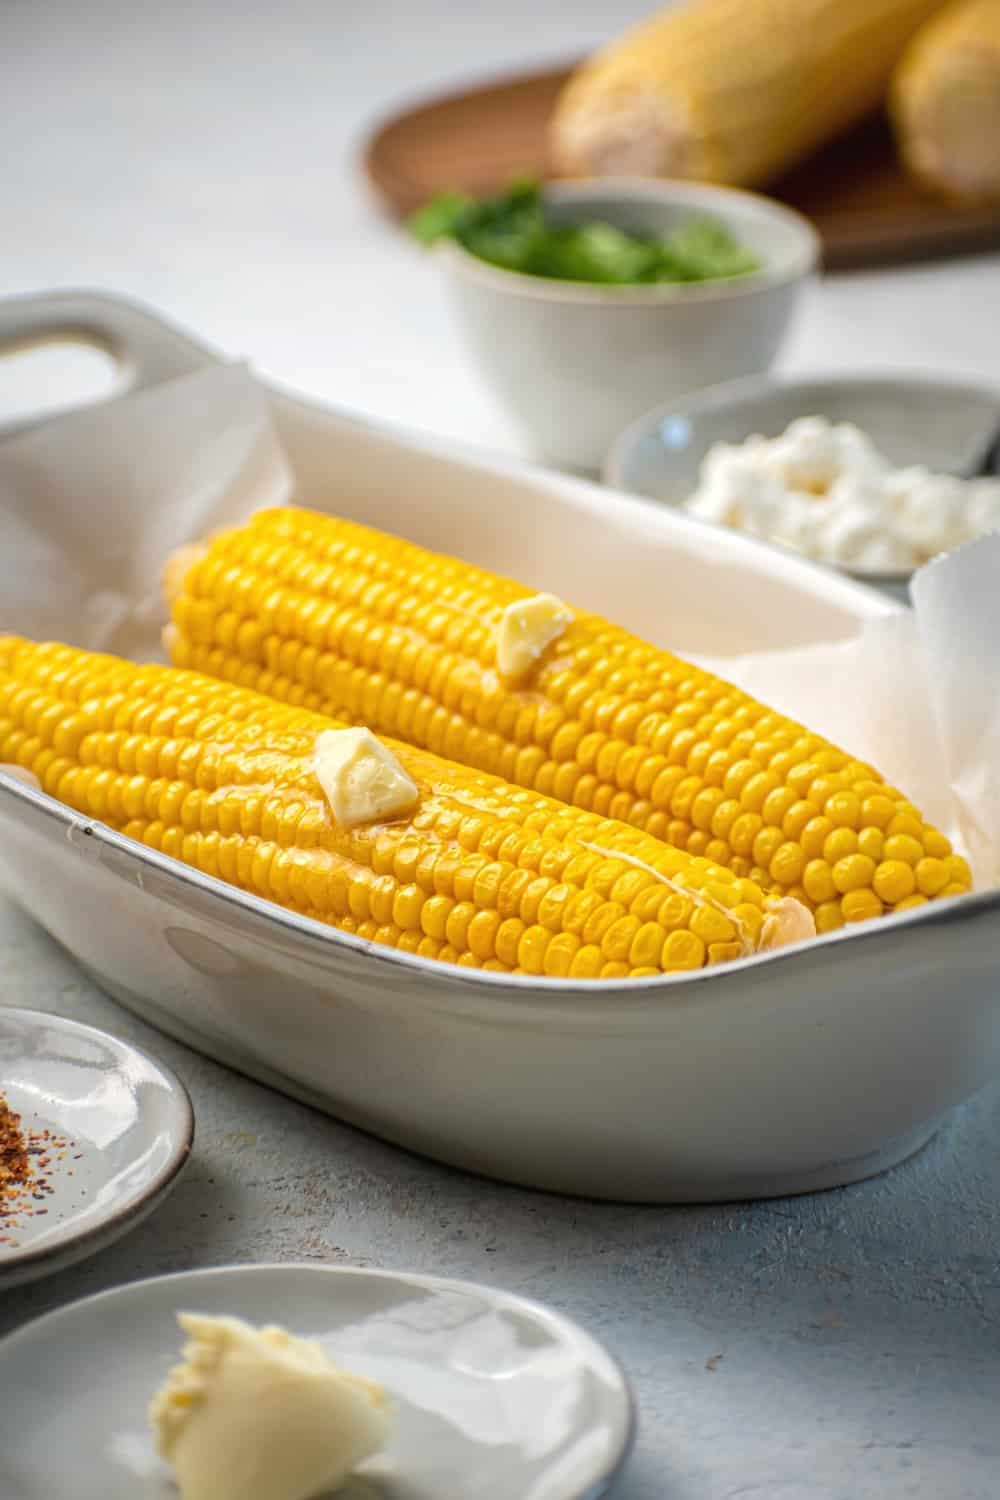 Two pieces of corn on the cob with a slab of butter on them on parchment paper in a white bowl. In front of the bowl is a small plate with butter on it in behind the bowl is a small bowl with mayo in it in and a small bowl of cilantro. Behind that is part of a corn on the cob on a wood board.